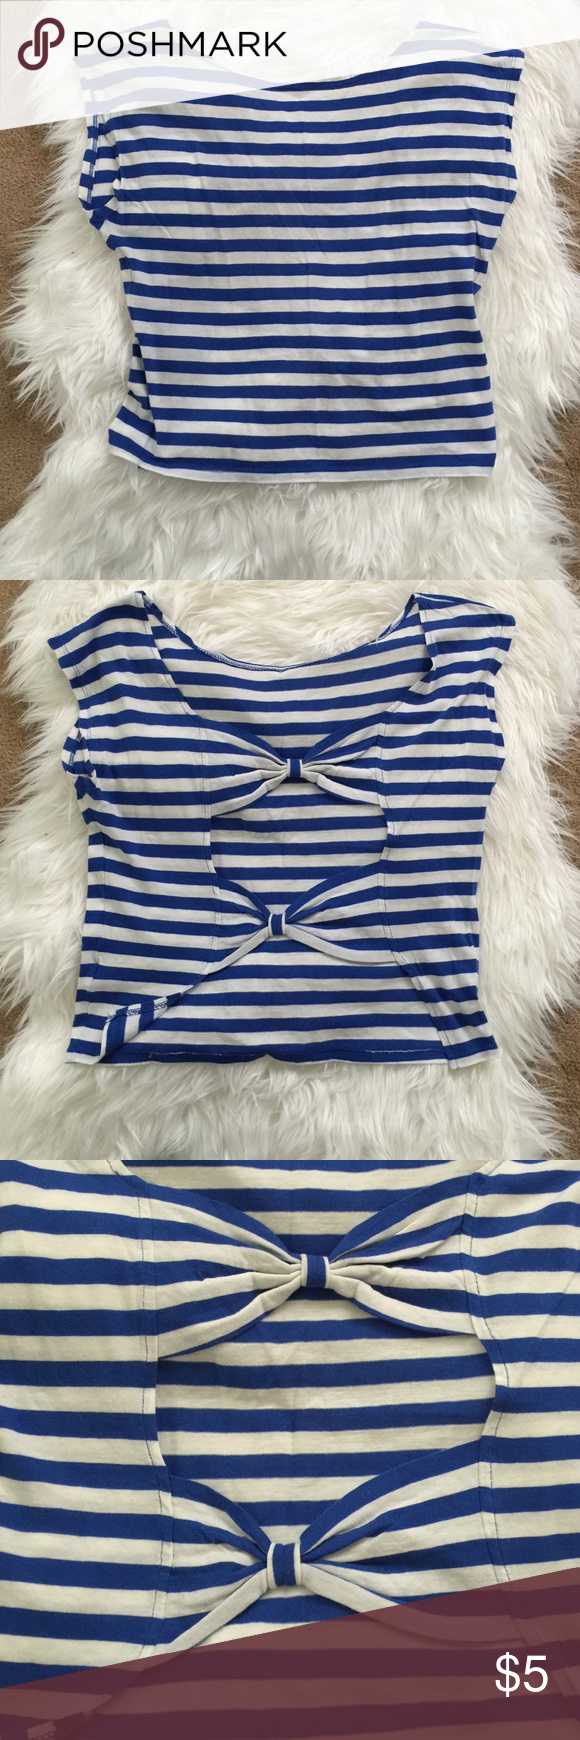 Heritage striped crop top Heritage striped blue and white crop top with open back detail, Size small Heritage 1981 Tops Crop Tops